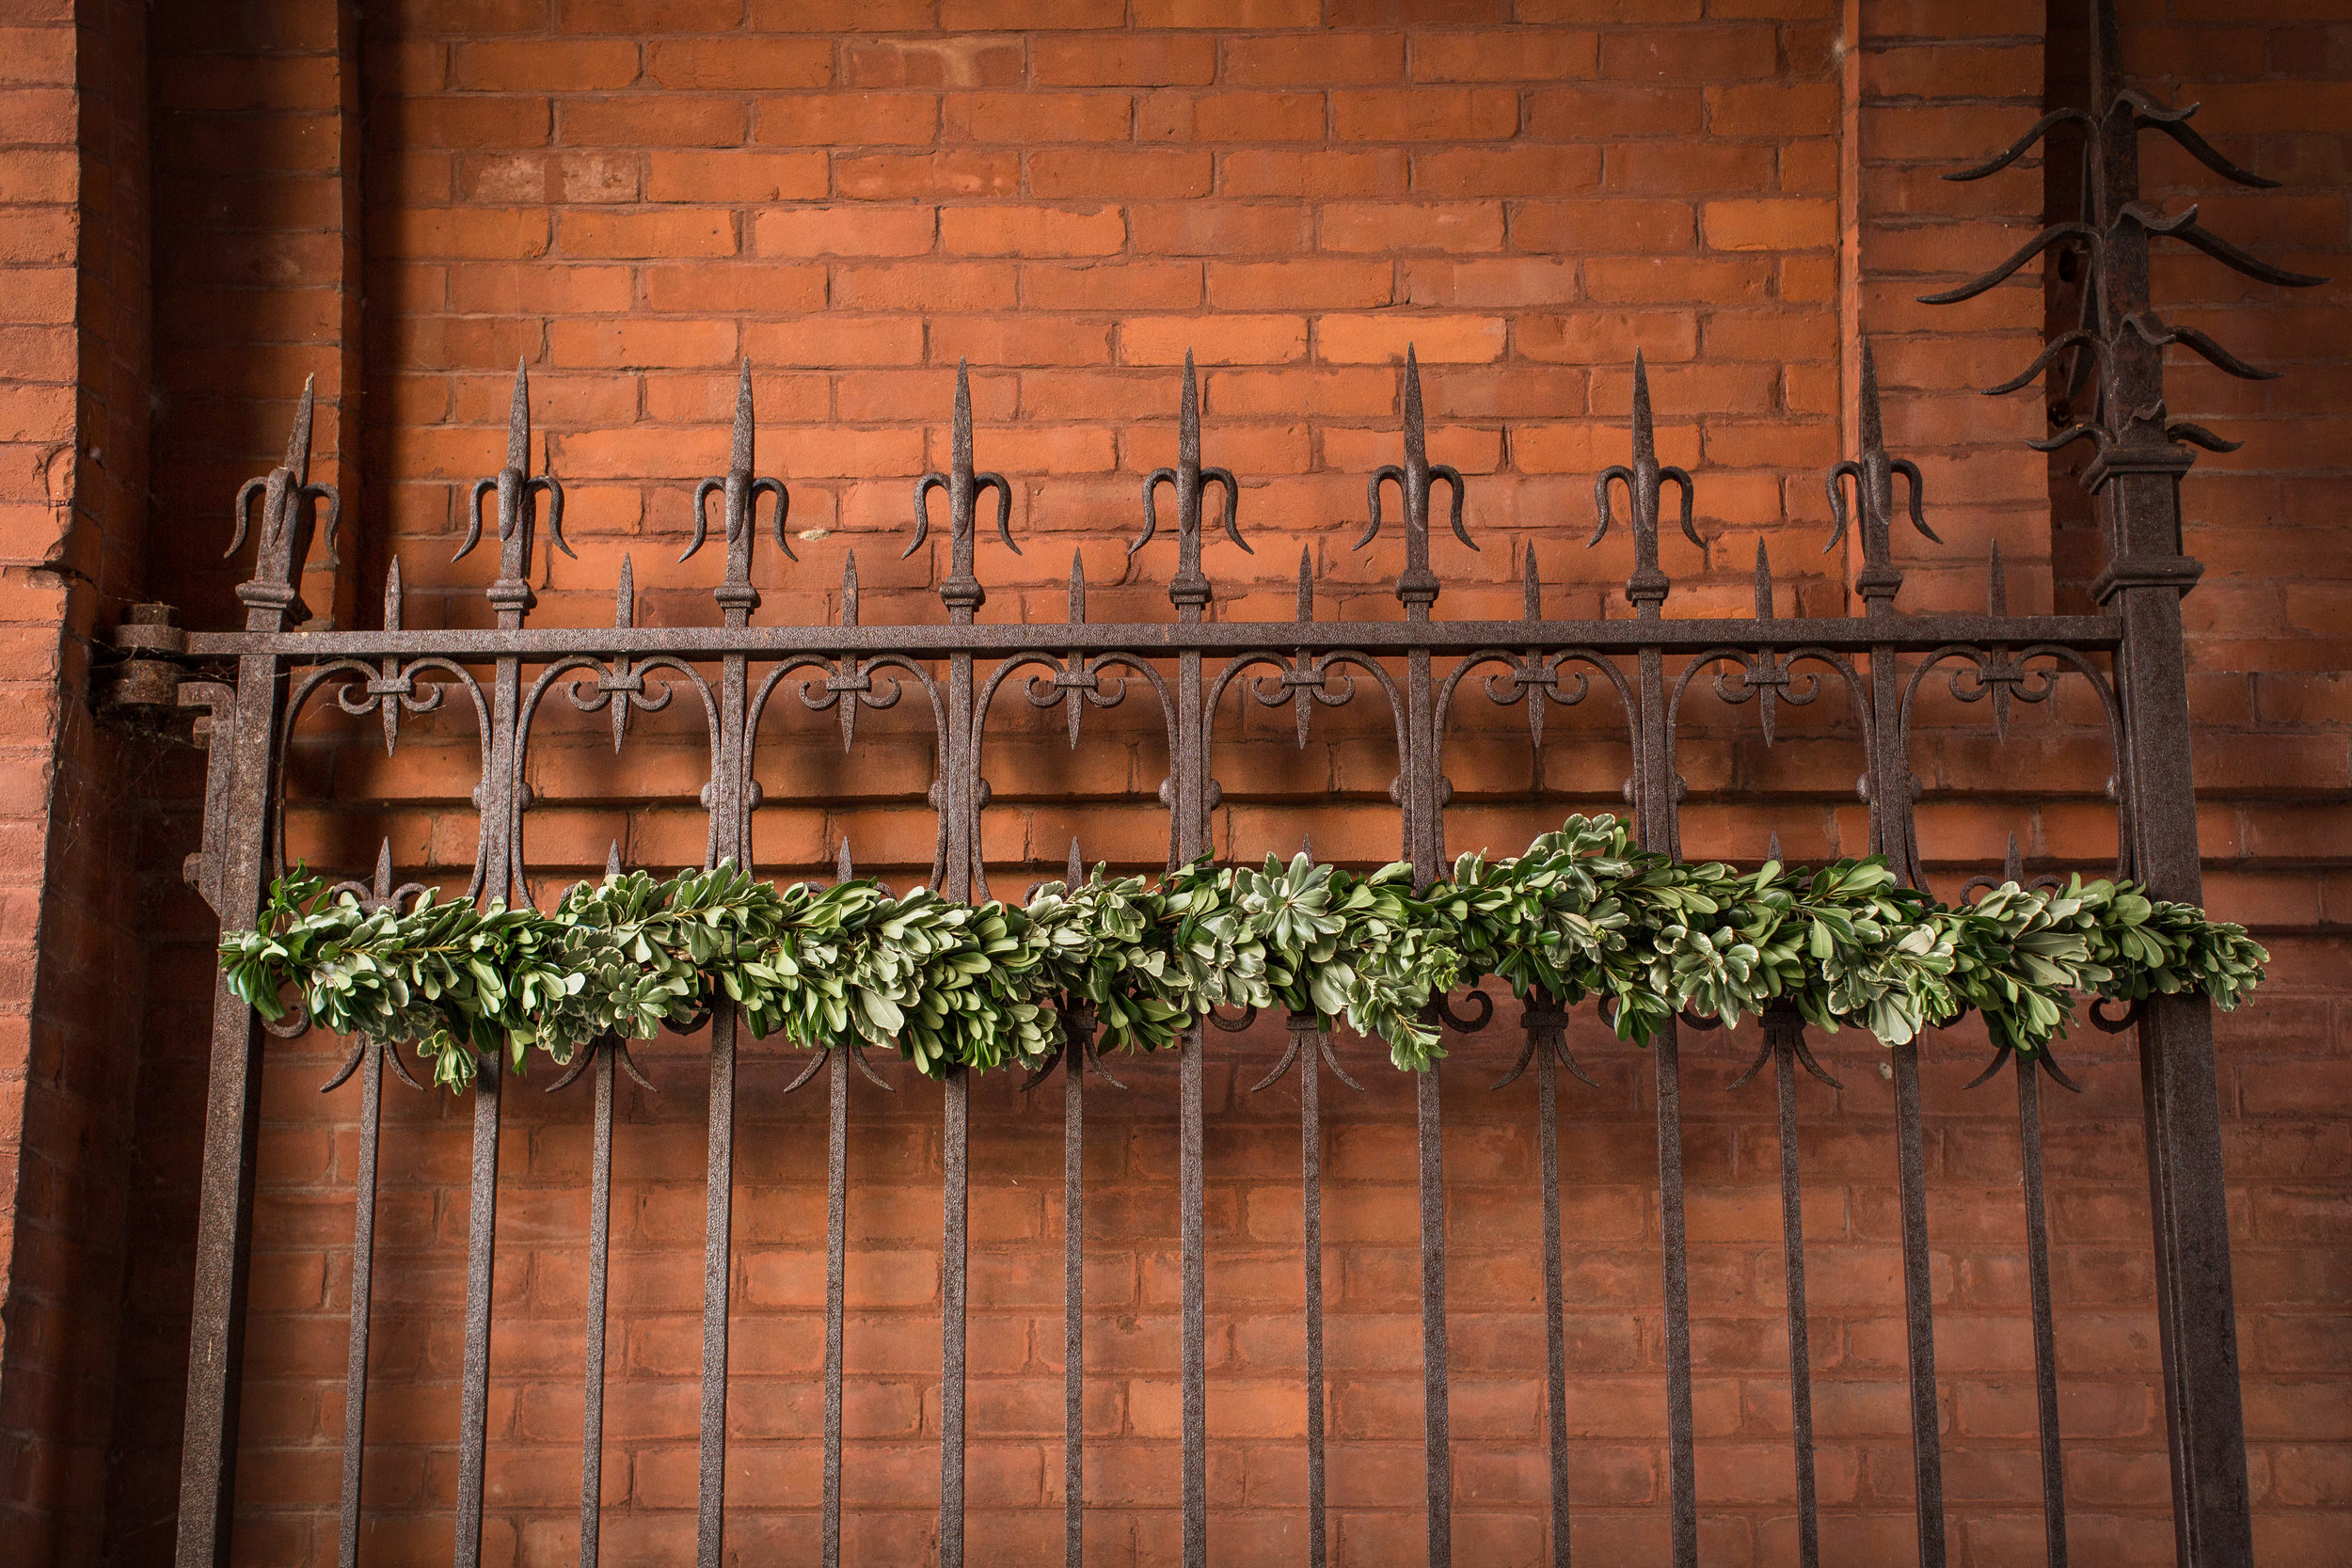 Wedding details and installations by Nectar & Root | Wedding floral design services in Burlington, Vermont (VT) | Garland of greenery on gate